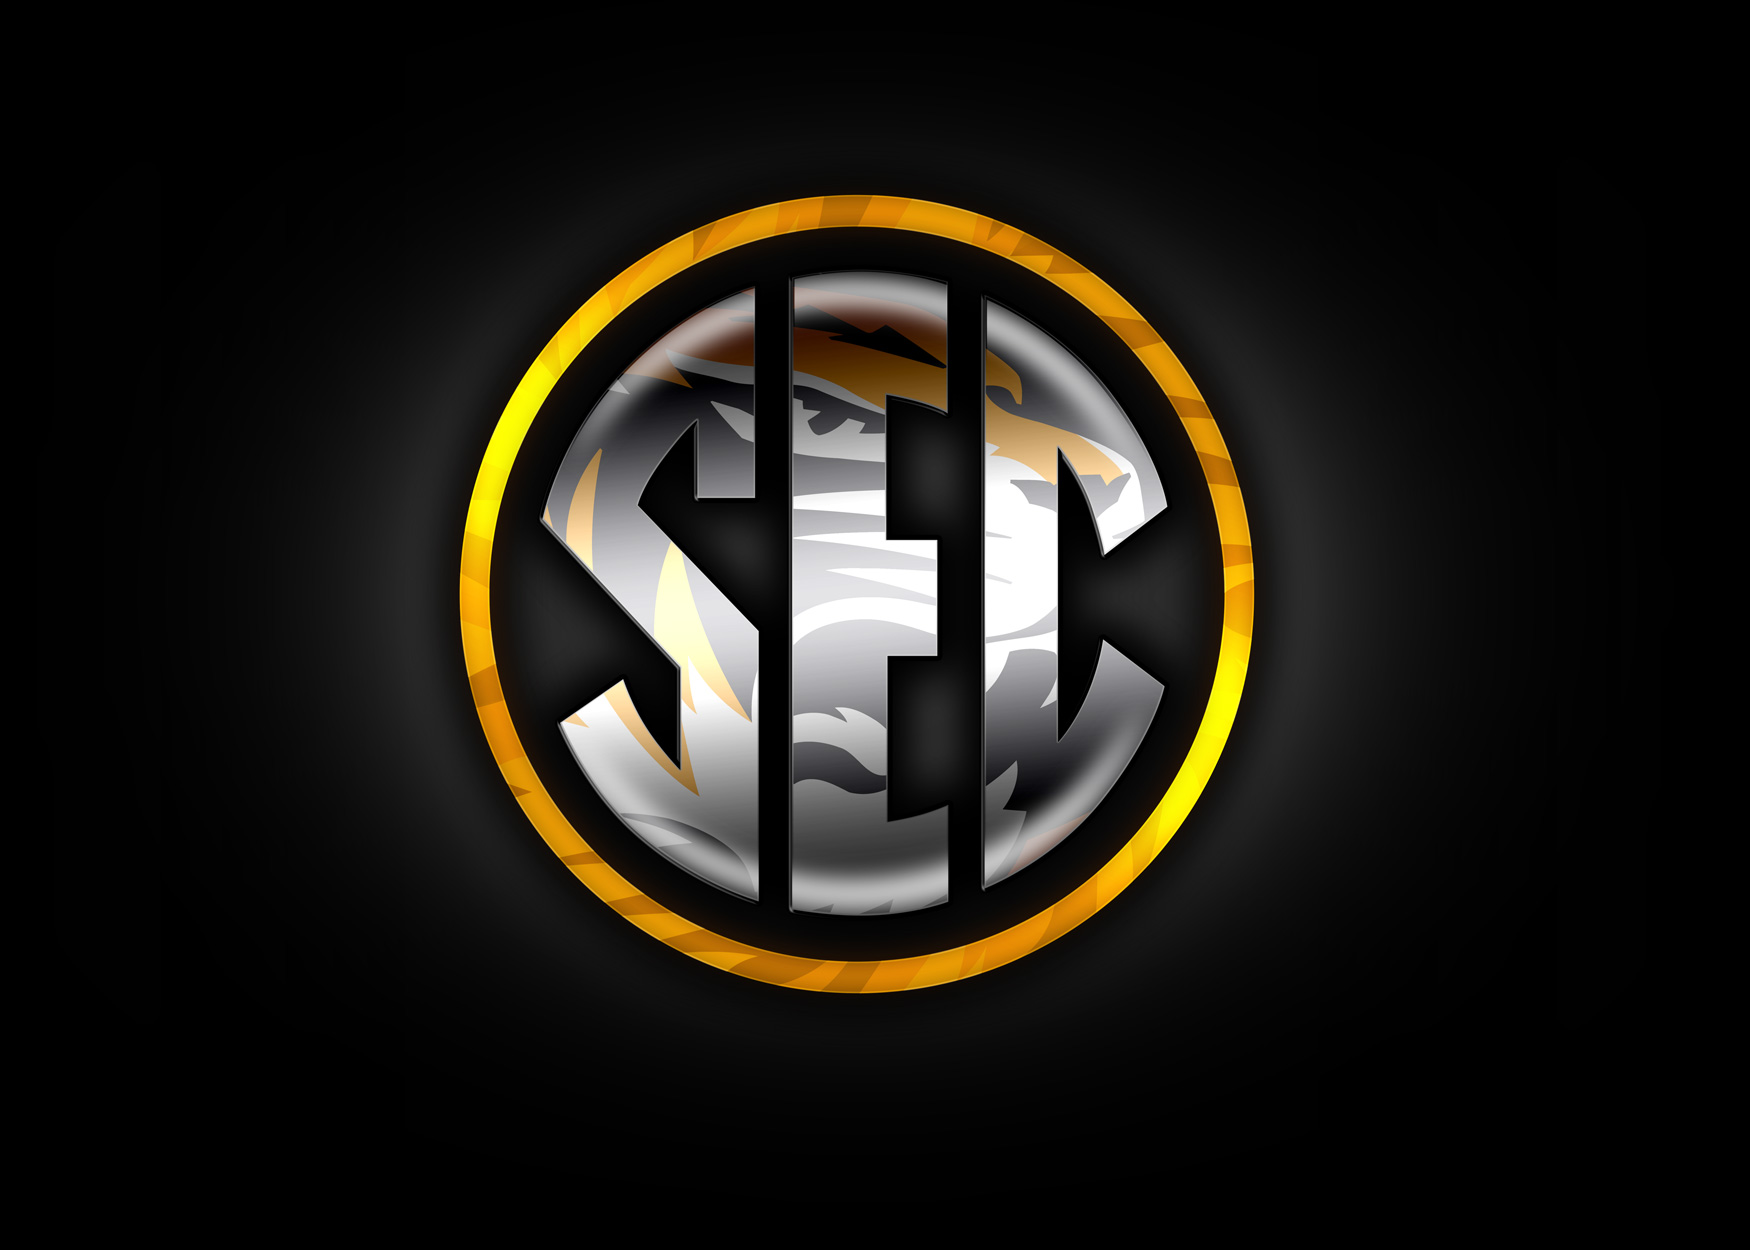 Mizzou2SEC   Graphics Wallpapers 1750x1250